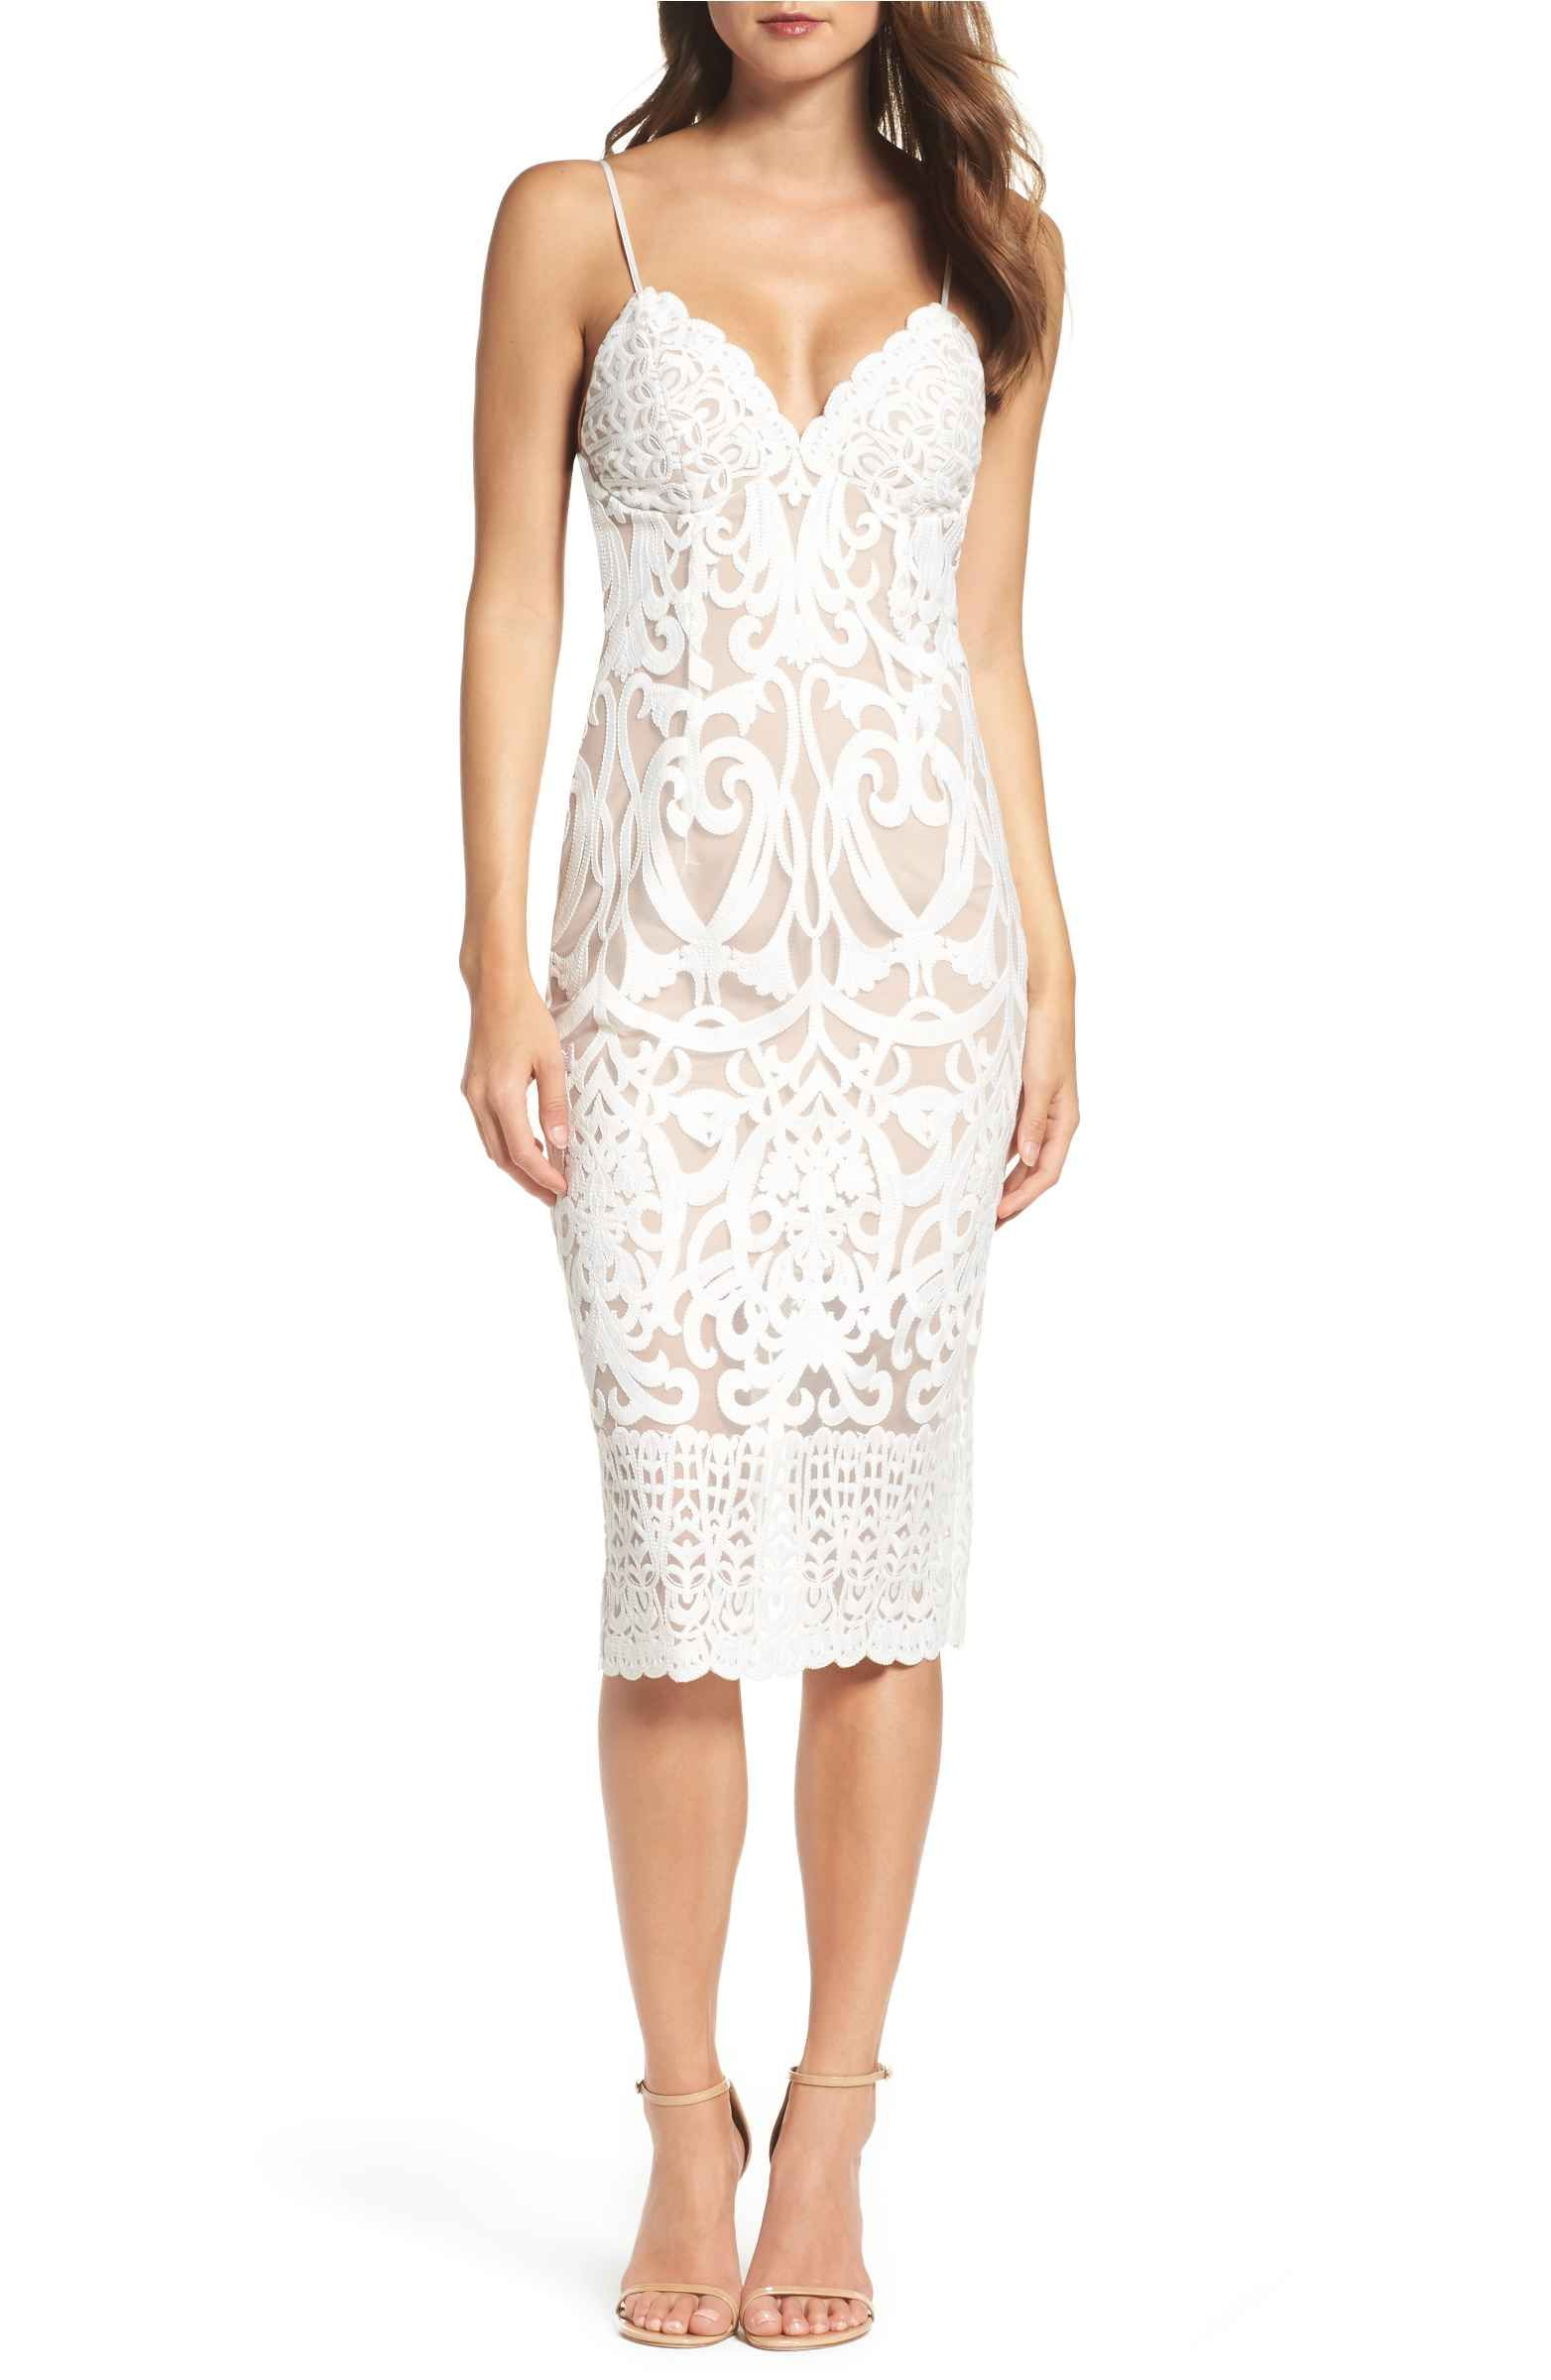 f9c1a06e63d208 Main Image - Bardot Gia Lace Pencil Dress | Lace, Sequins and ...